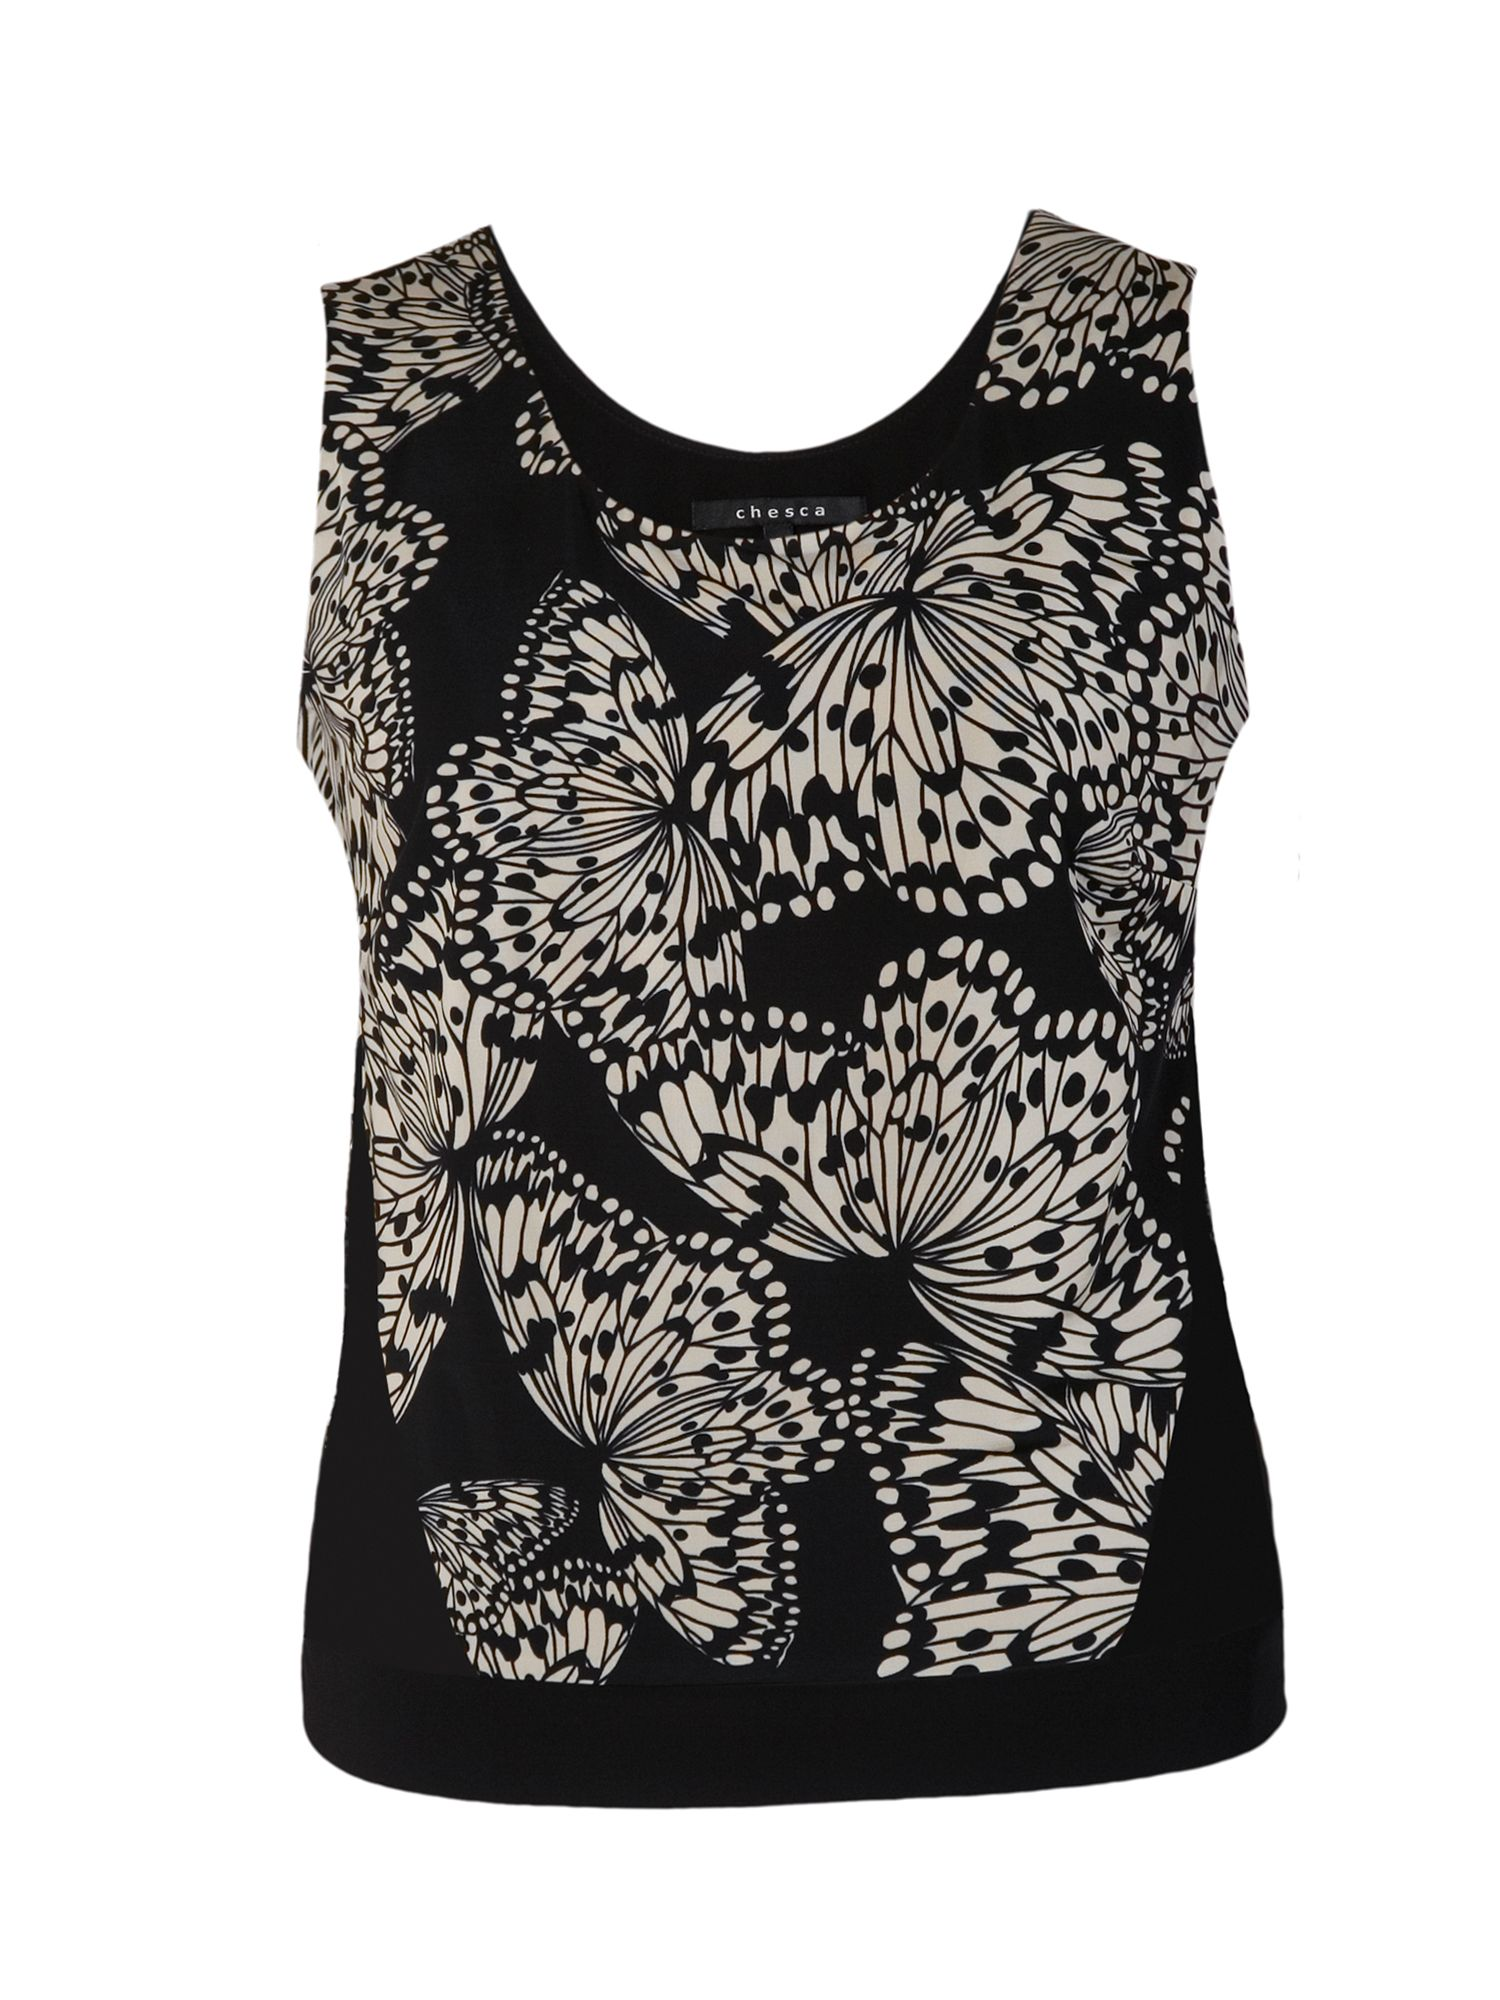 Butterfly print jersey camisole